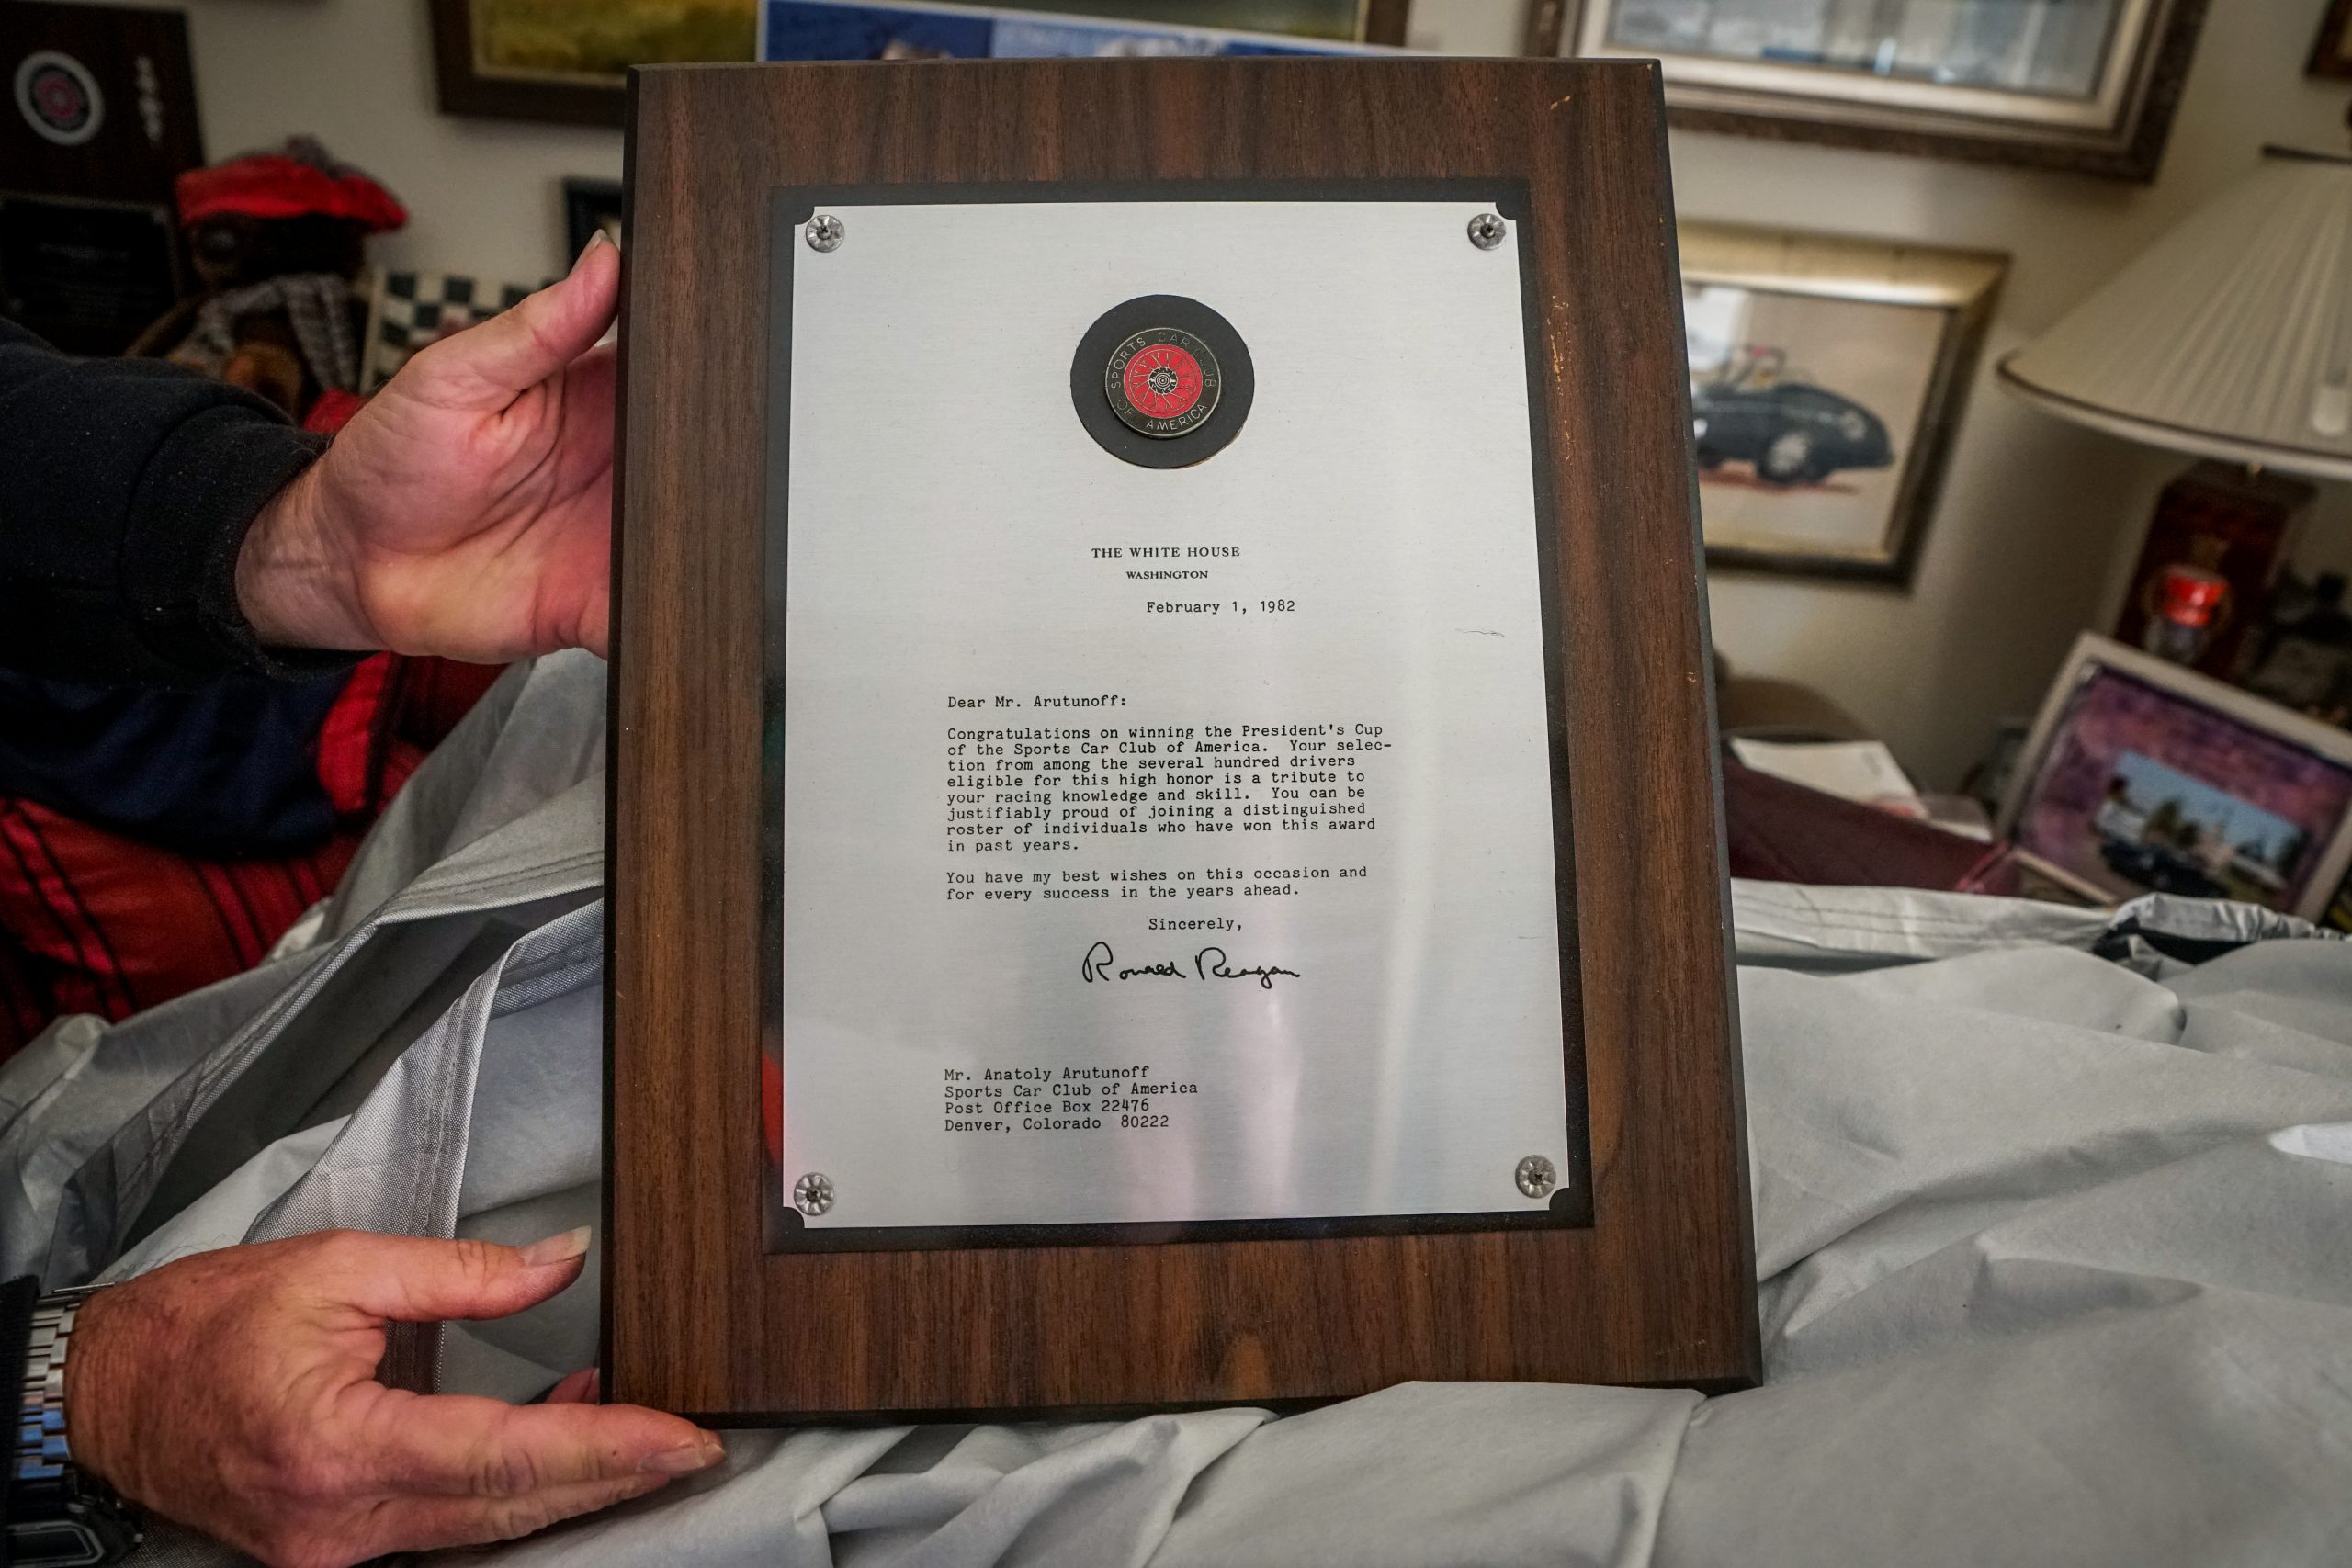 toly arutunoff reagan letter plaque